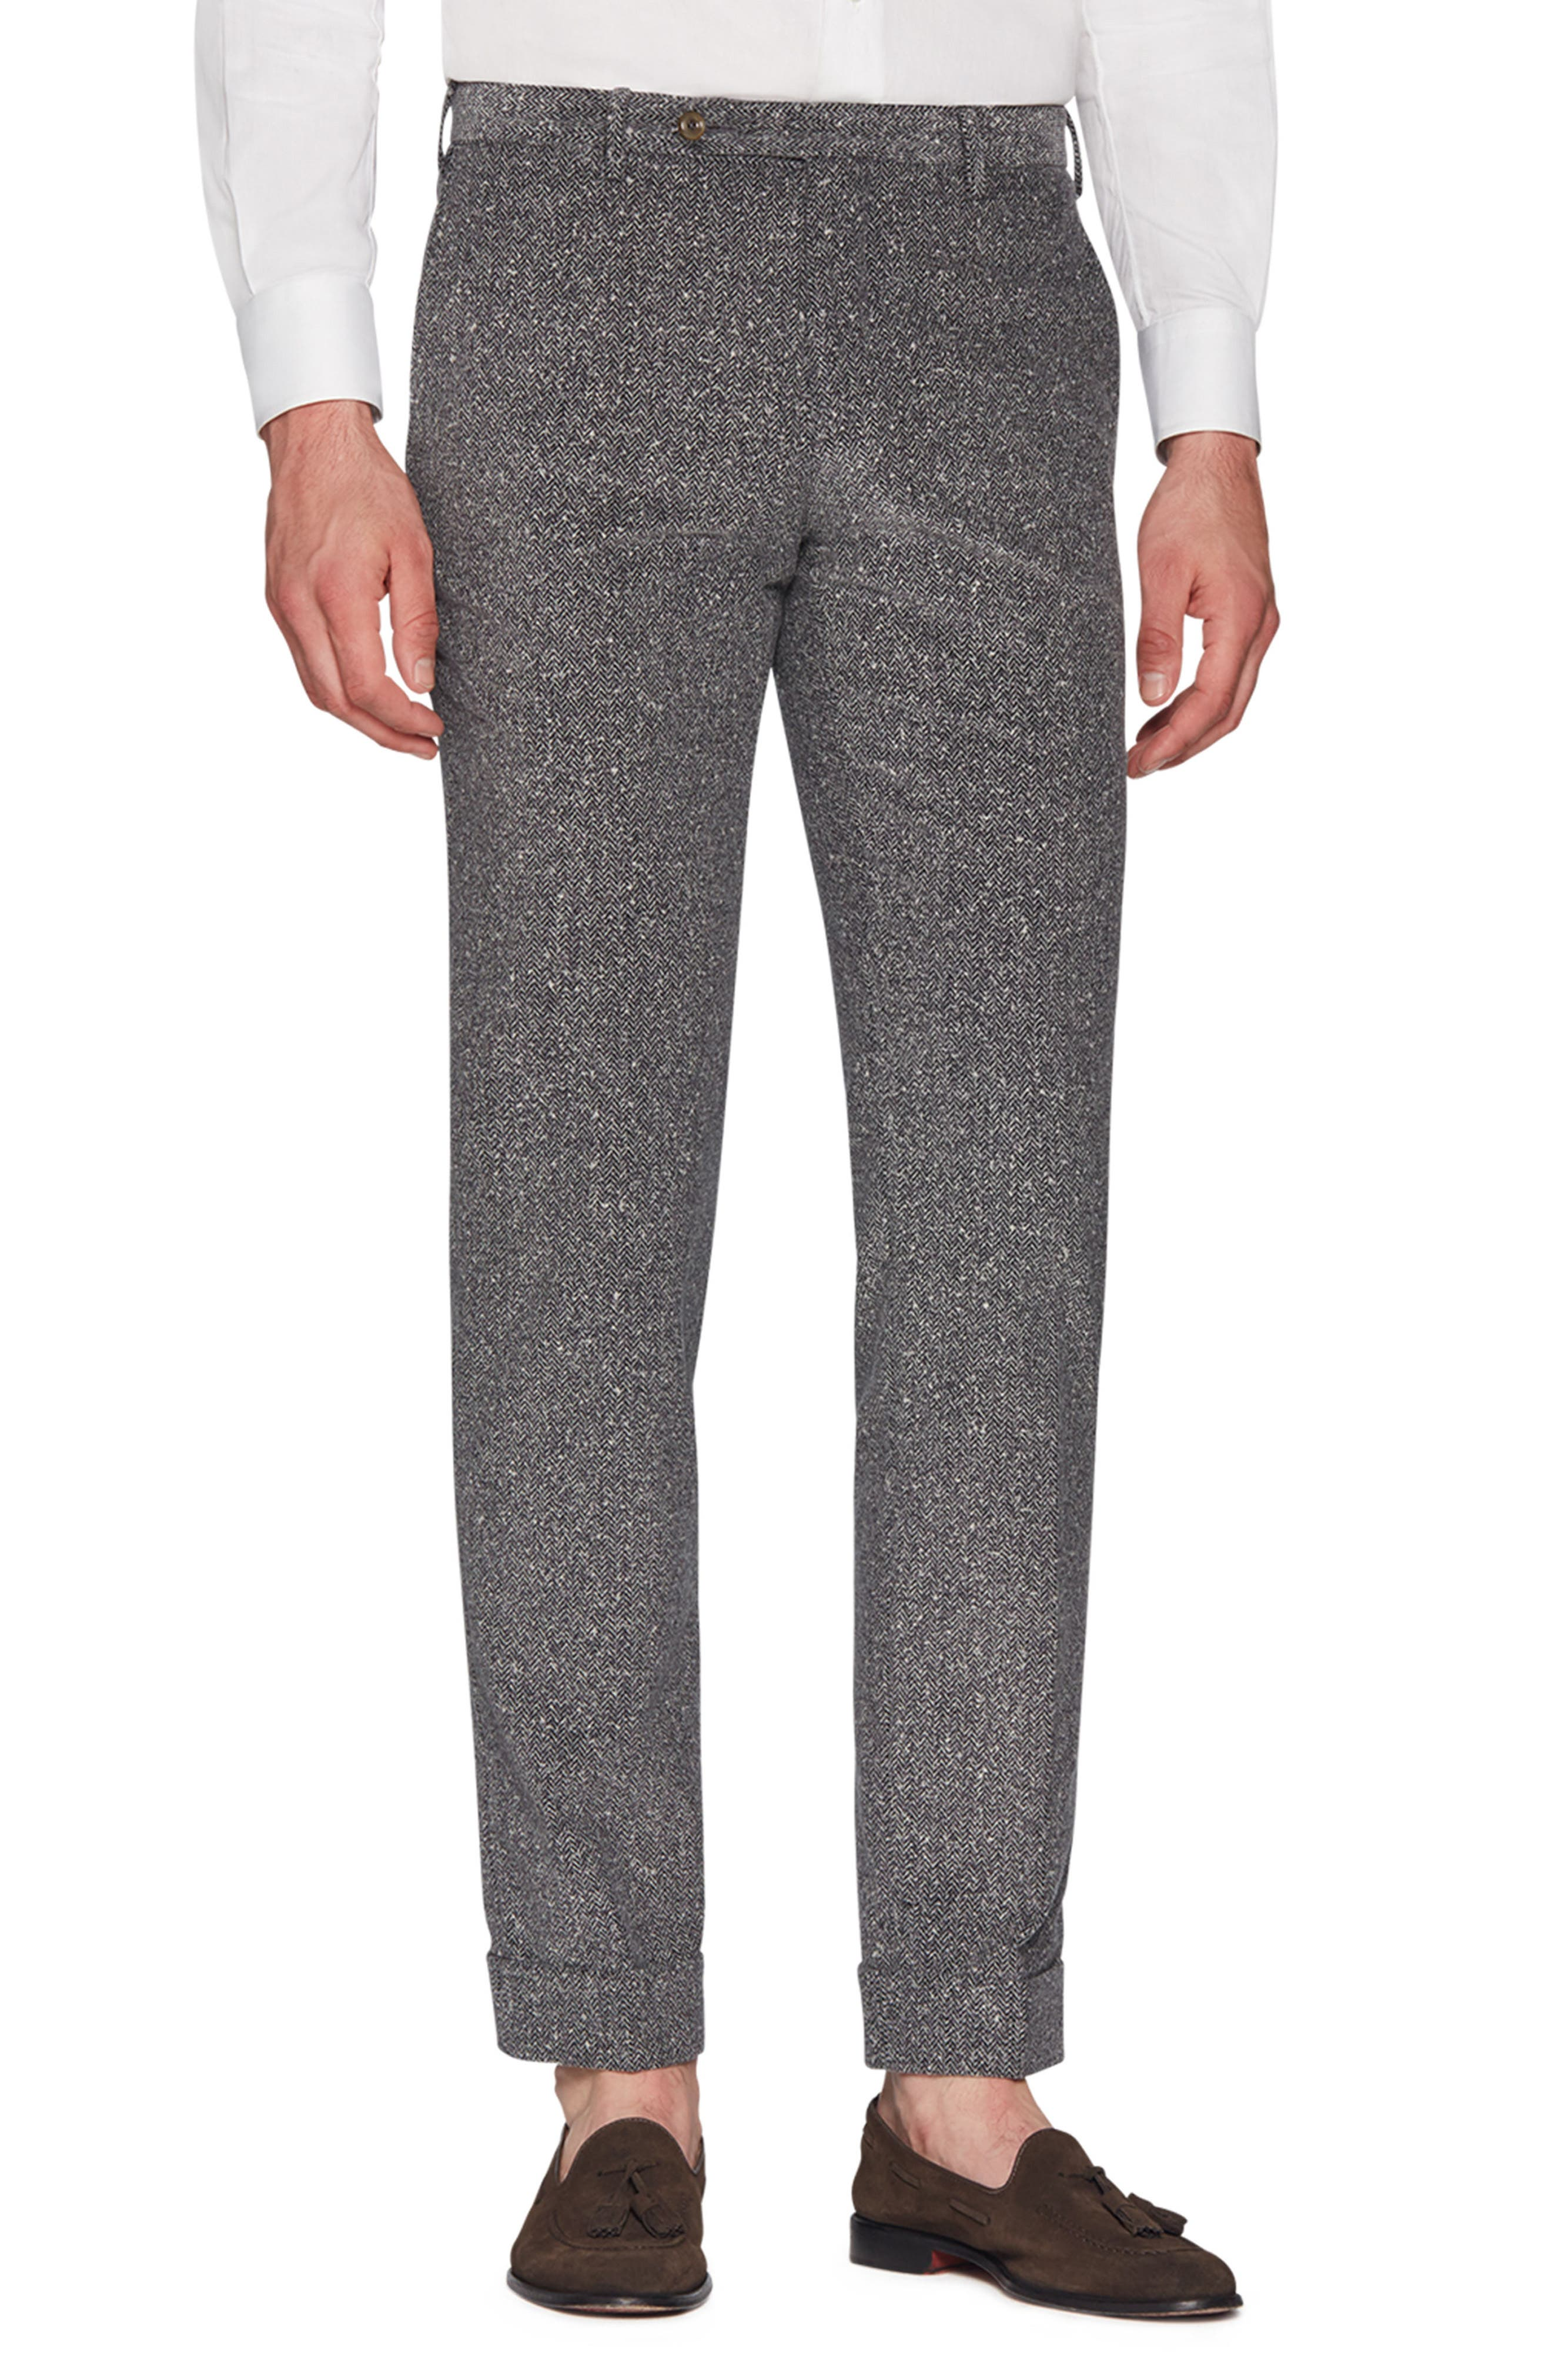 Curtis Flat Front Herringbone Cotton Trousers,                         Main,                         color, MID GREY